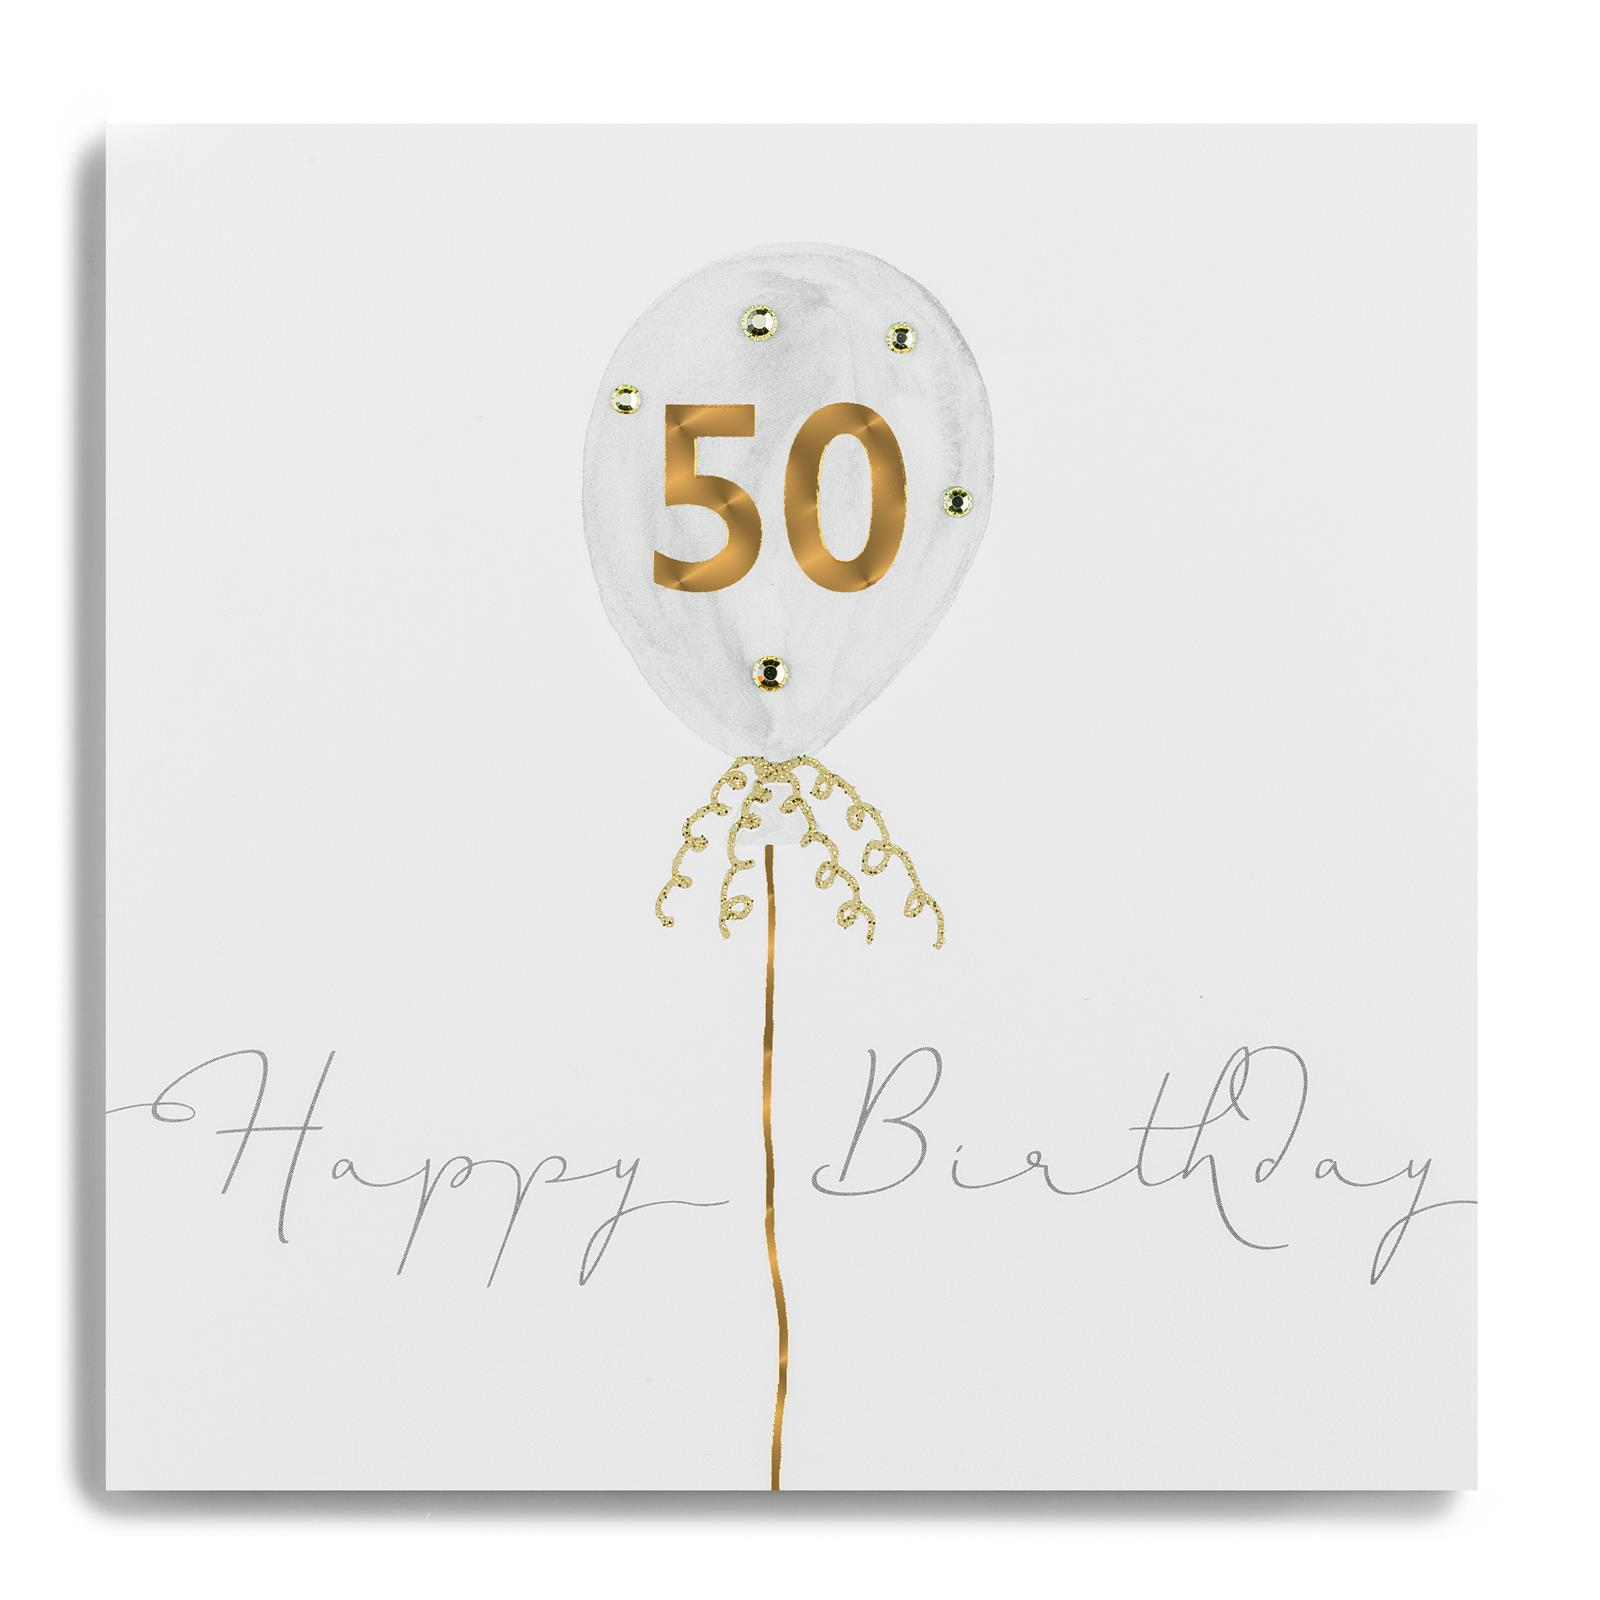 buy 50th birthday card for her online with gold balloon, from karenza paperie luxury hand finished age fifty birthday cards